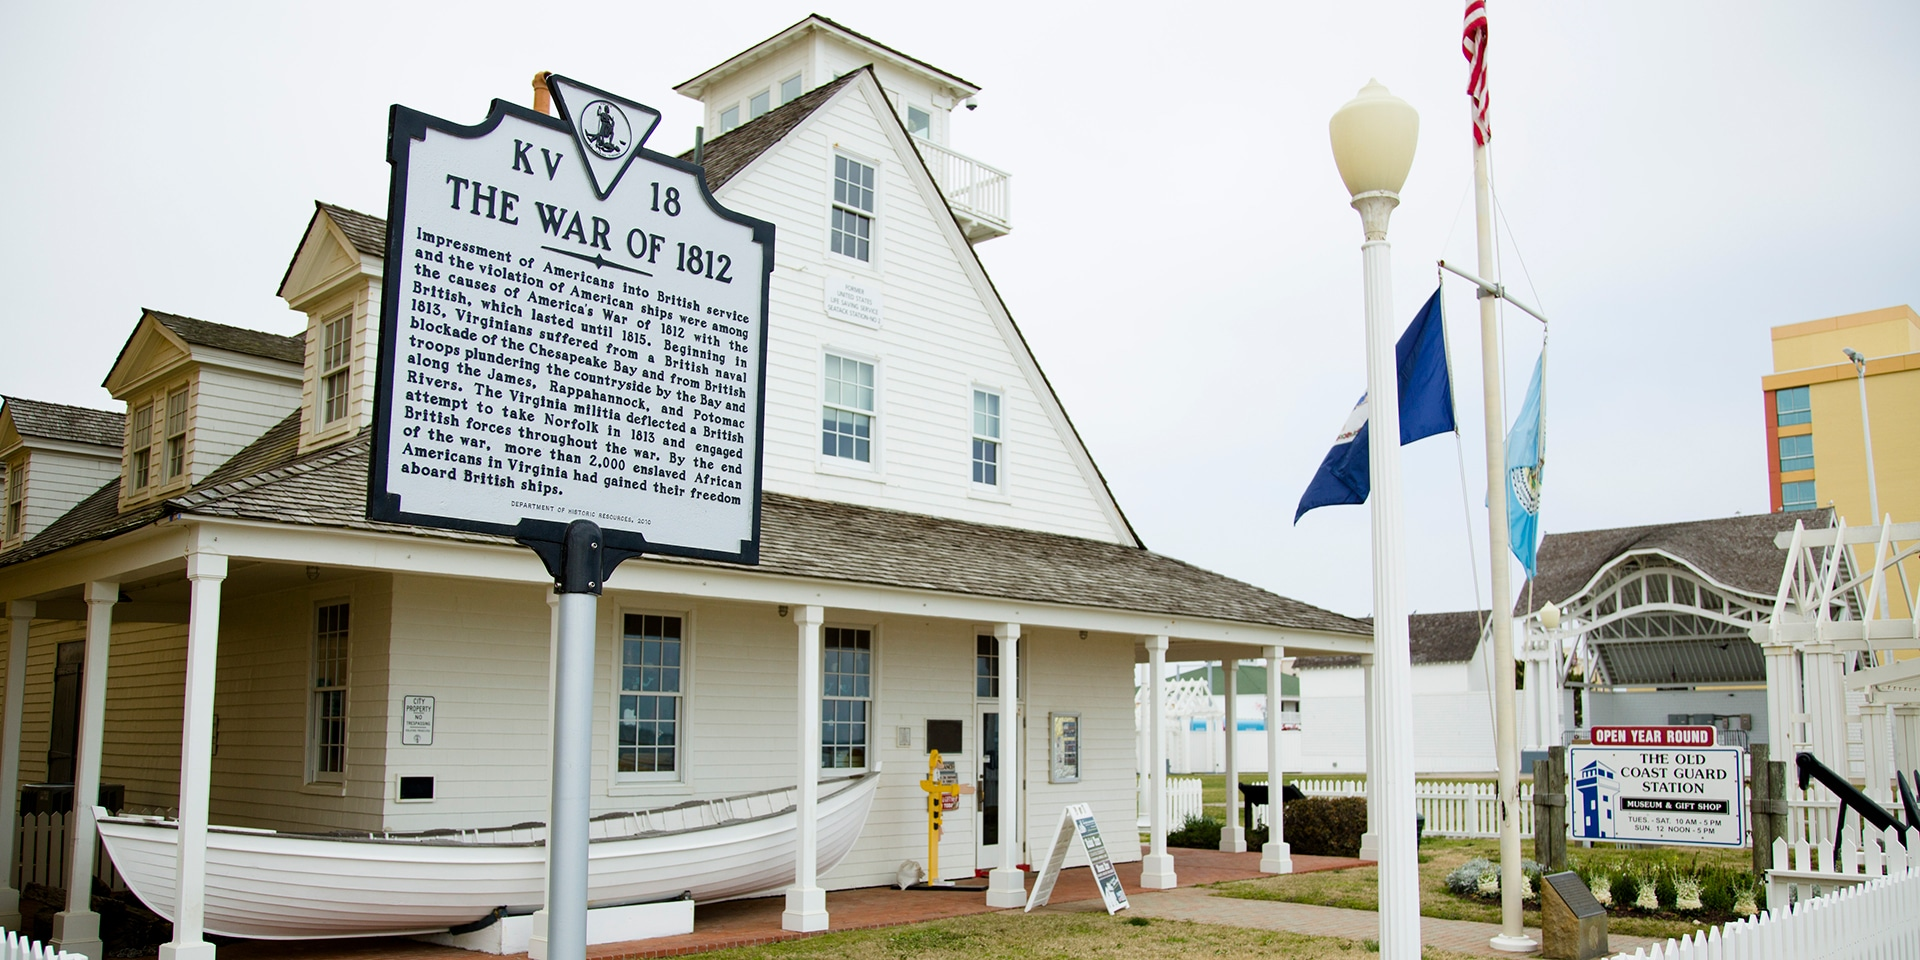 Virginia Beach Kids Will Get A Kick Out Of The Old Coast Guard Station Where You Can Join Tour Shipwrecks Ghosts And Pirates